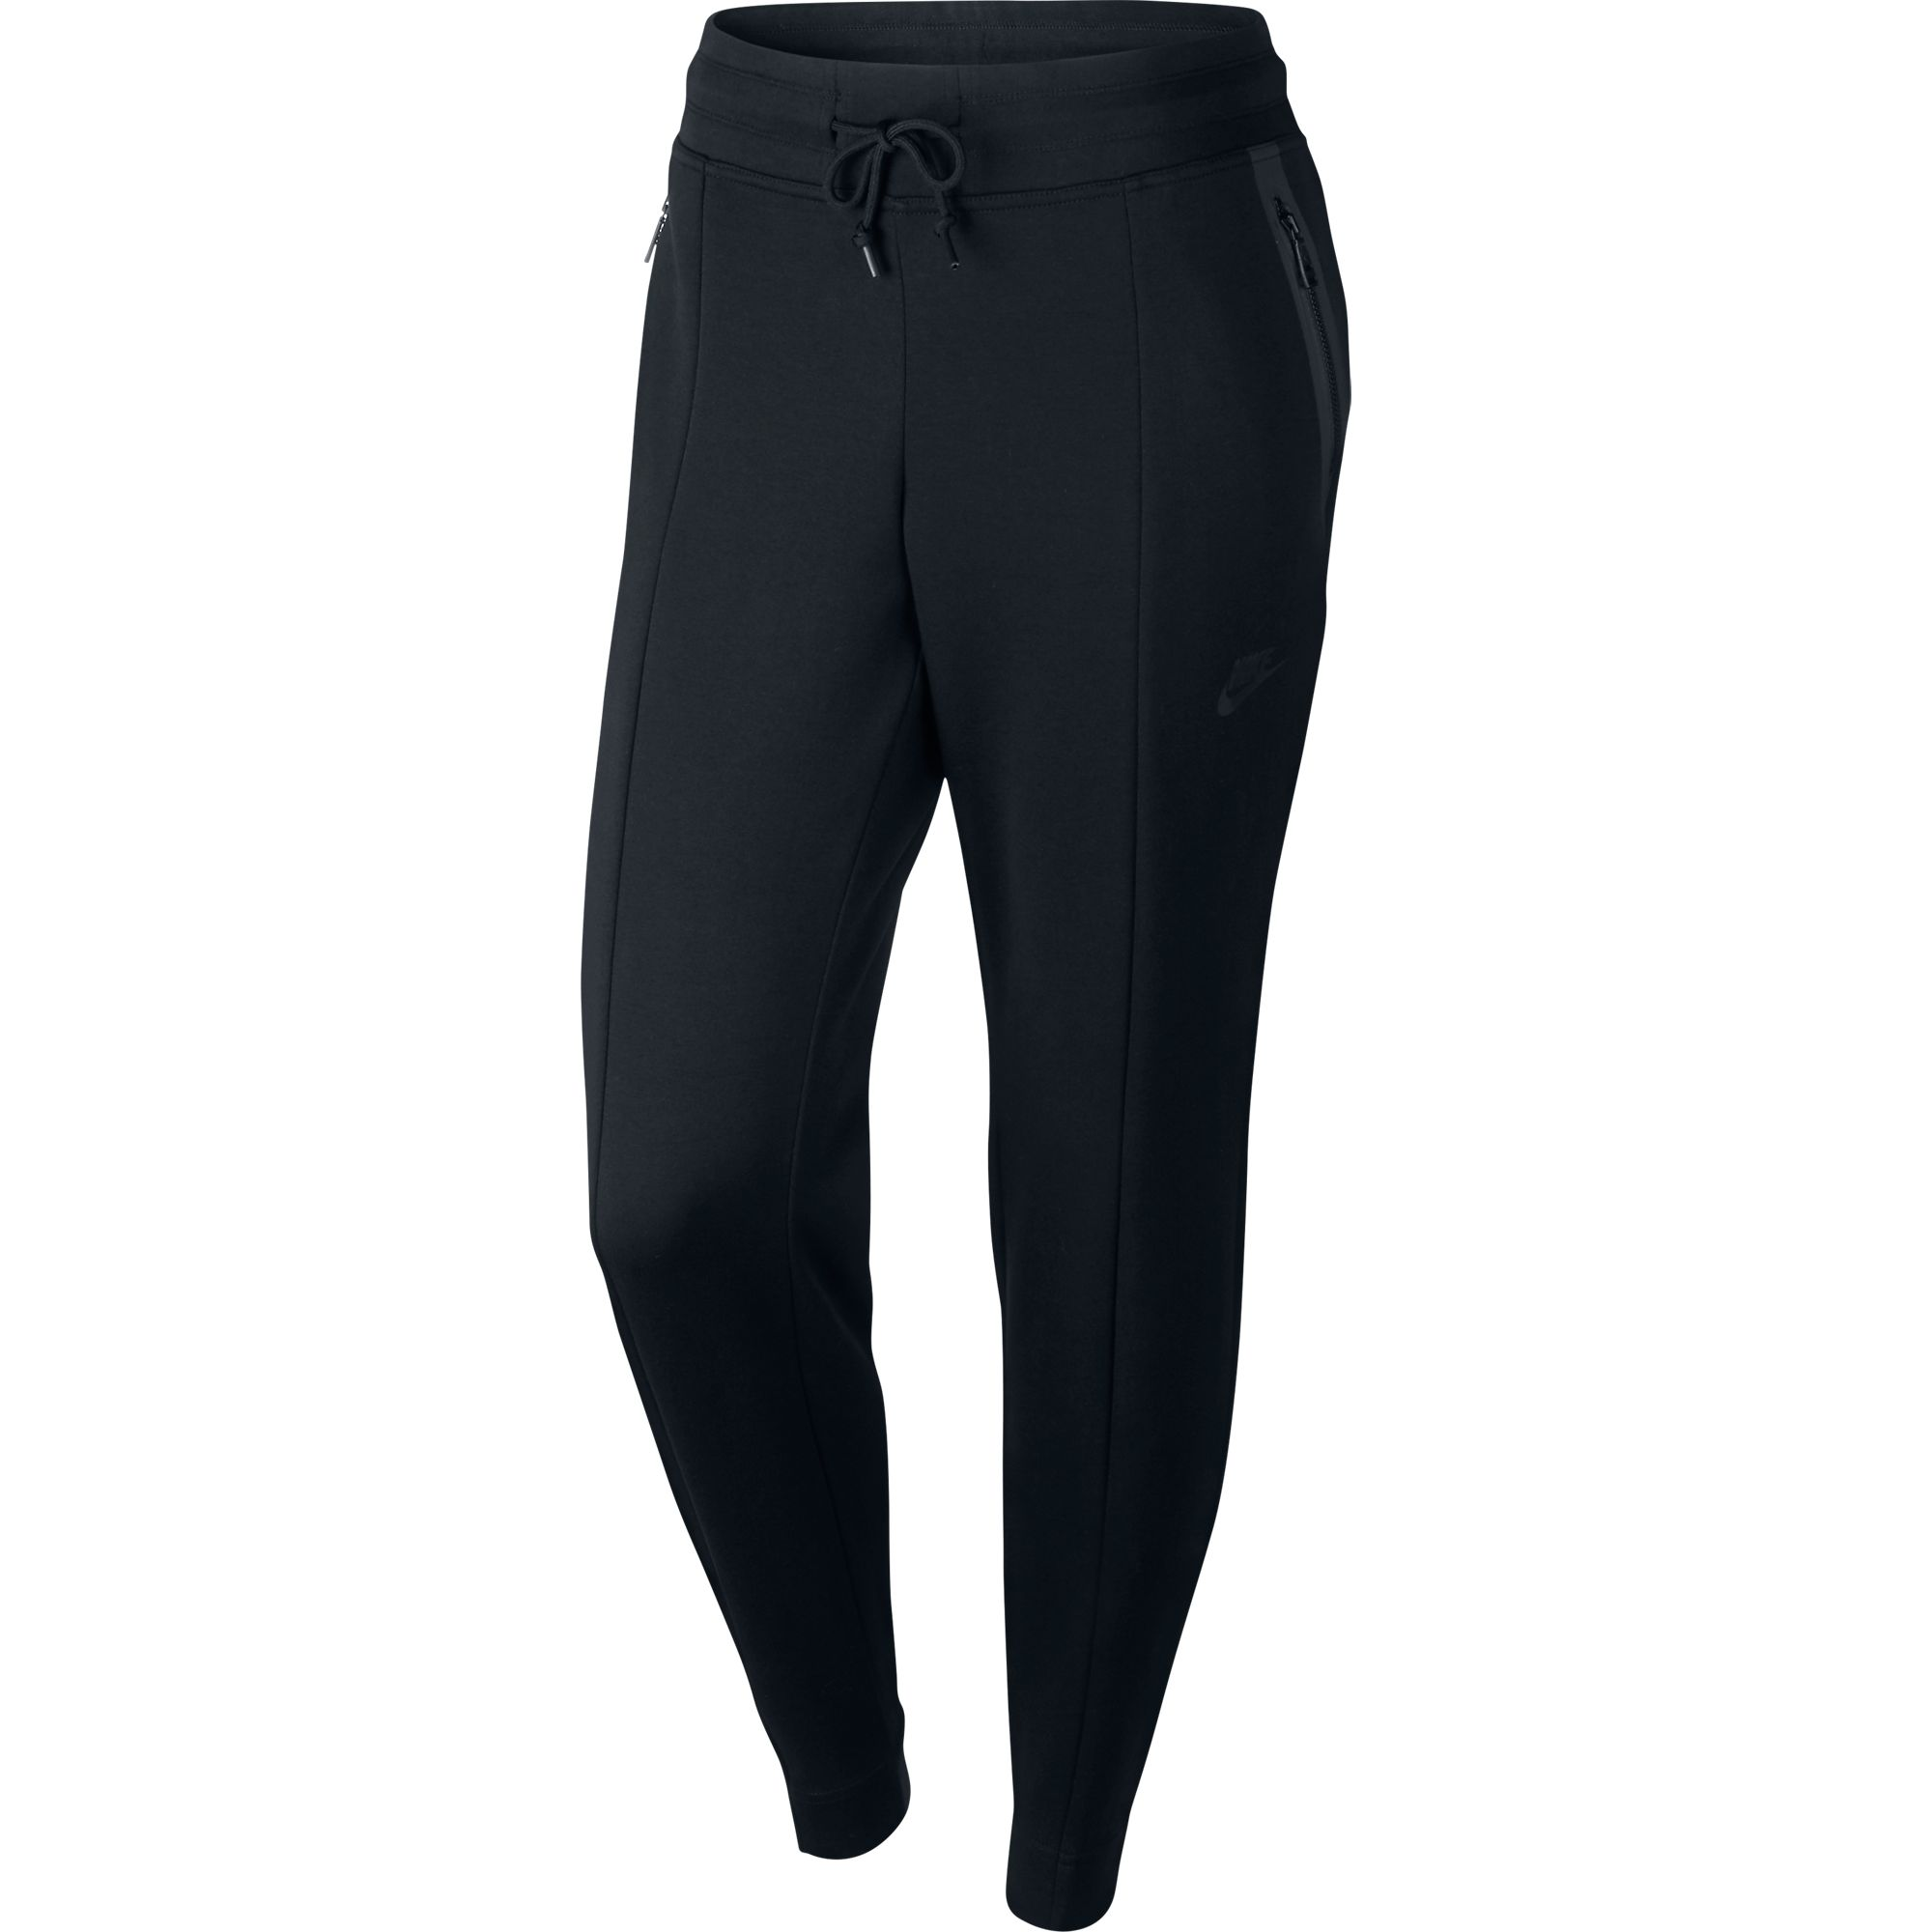 Luxury Nike Soccer Knit Pant Clothing  Shipped Free At Zappos